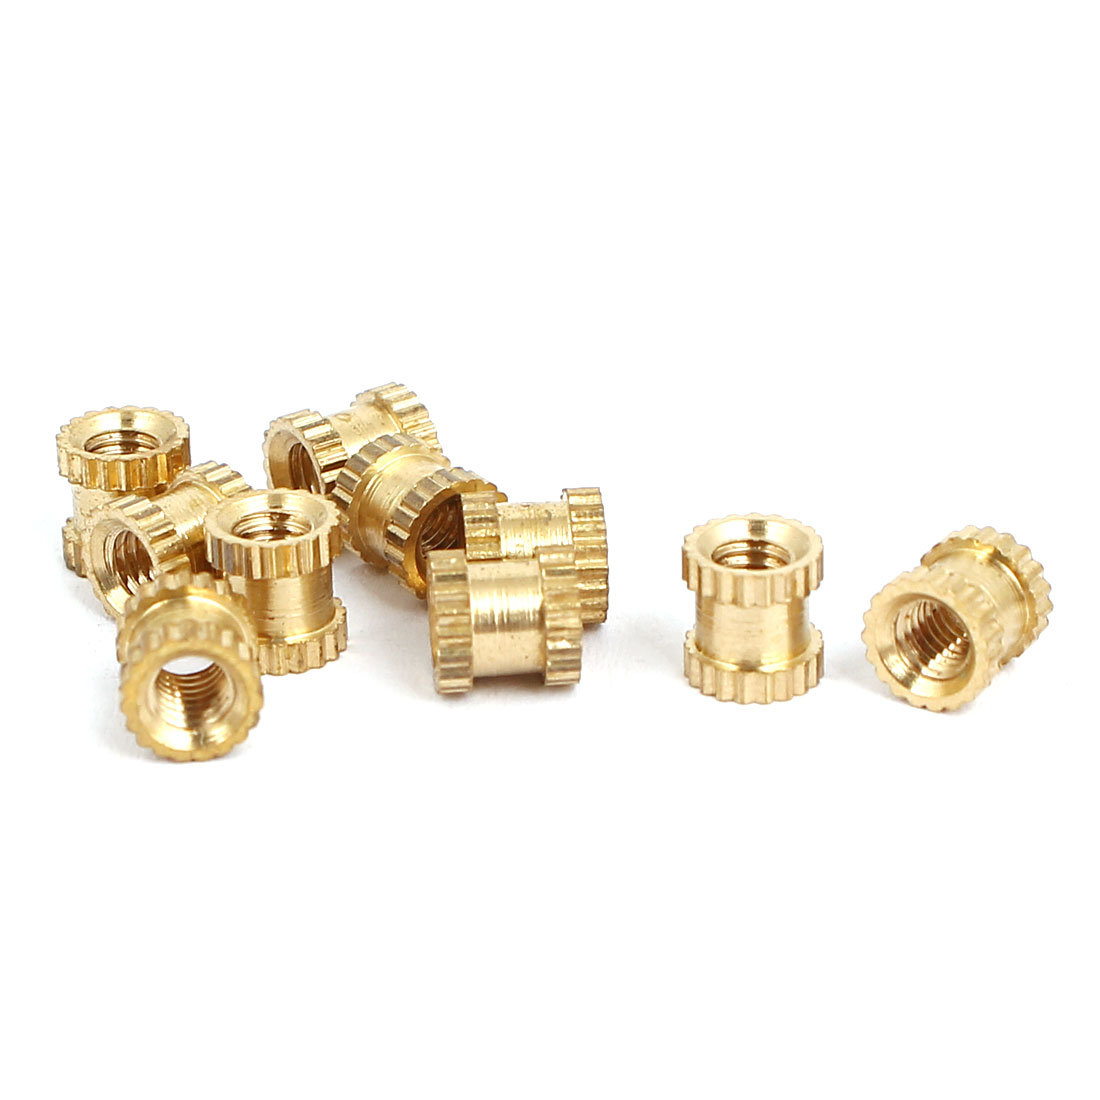 M3x5mmx5mm Female Threaded Brass Knurled Insert Embedded Nuts Gold Tone 10pcs